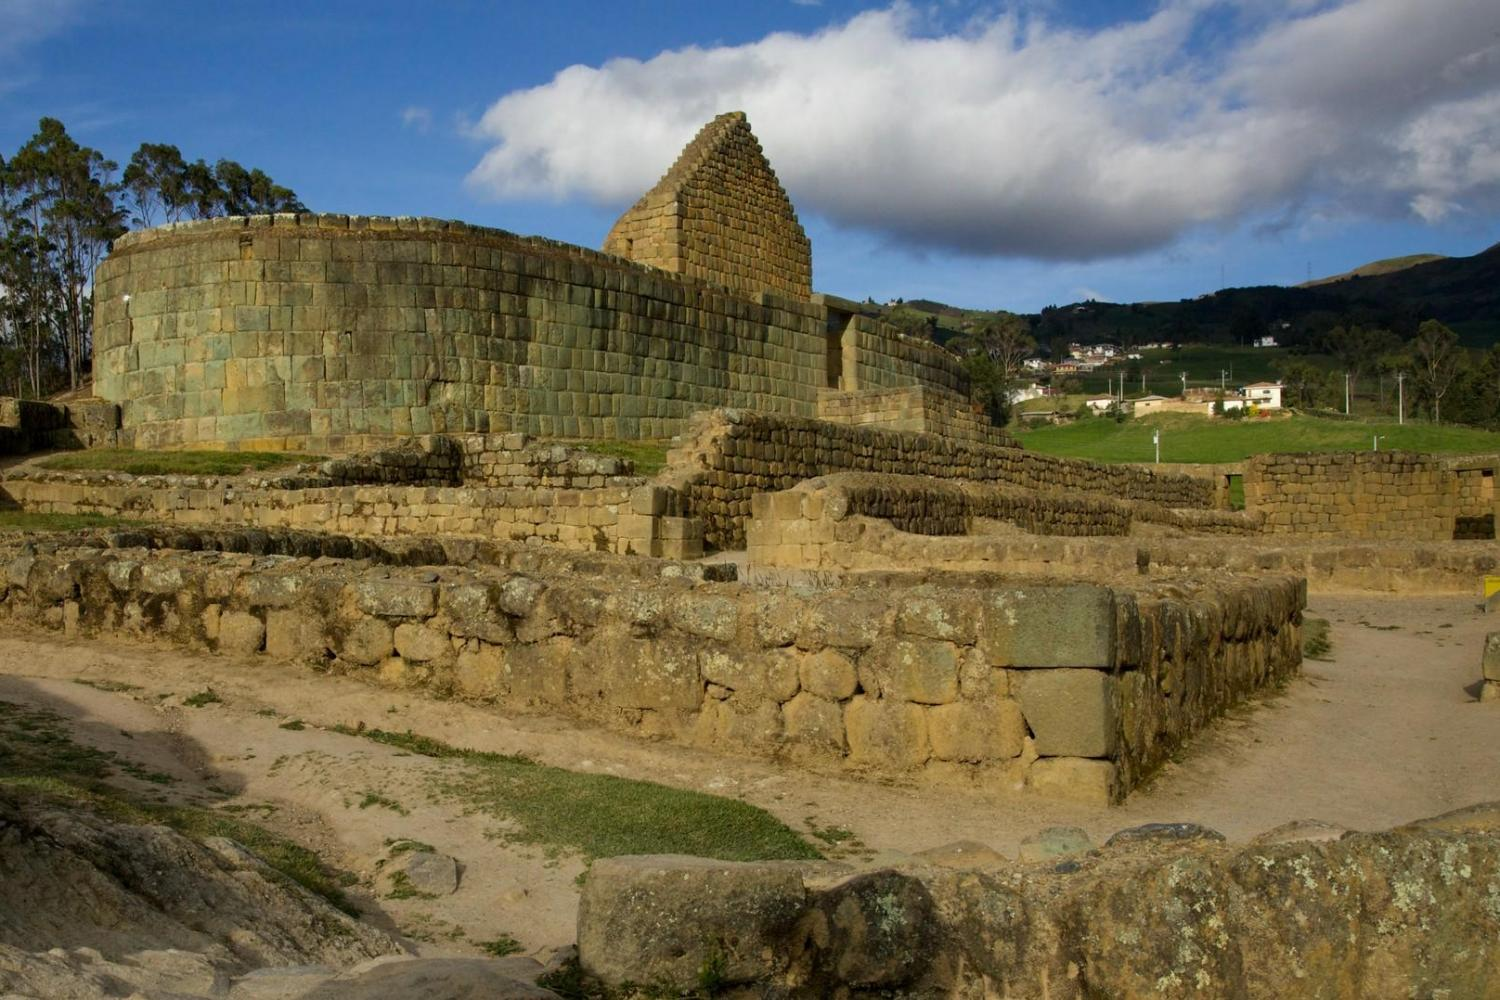 Excursion to the Ingapirca Inca Ruins and train